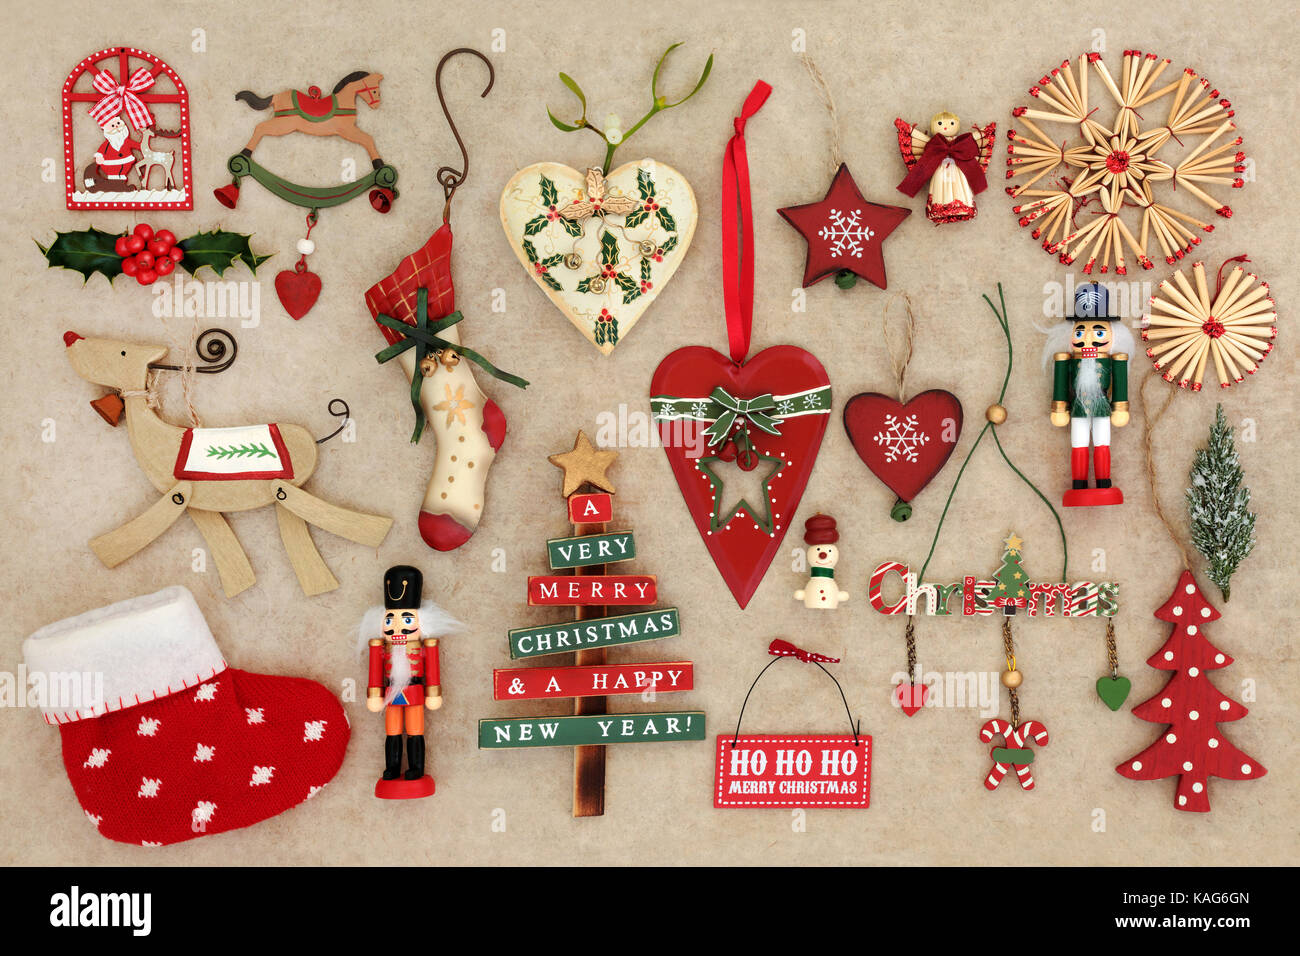 Old Christmas Decorations.Old Fashioned Christmas Decorations On Handmade Hemp Paper